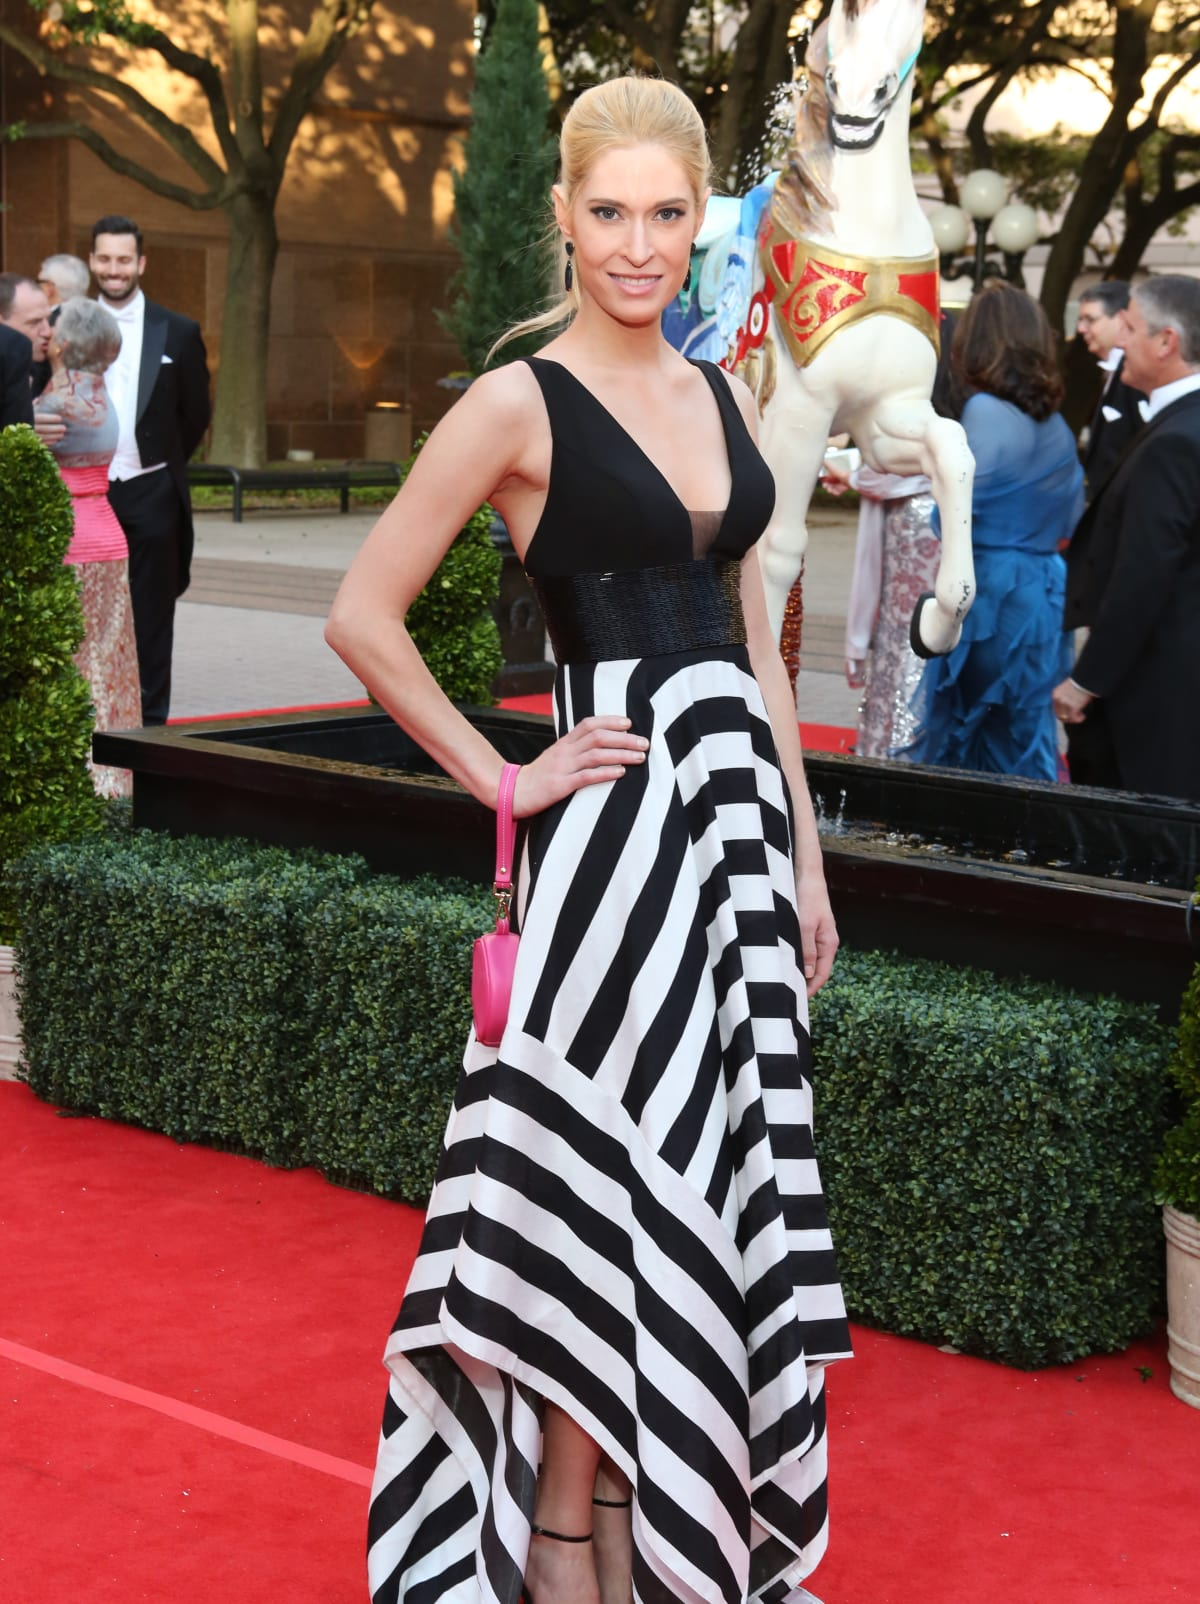 Houston, Opera Ball Gowns, April 2016, Kendall Hanno in Juvanni.